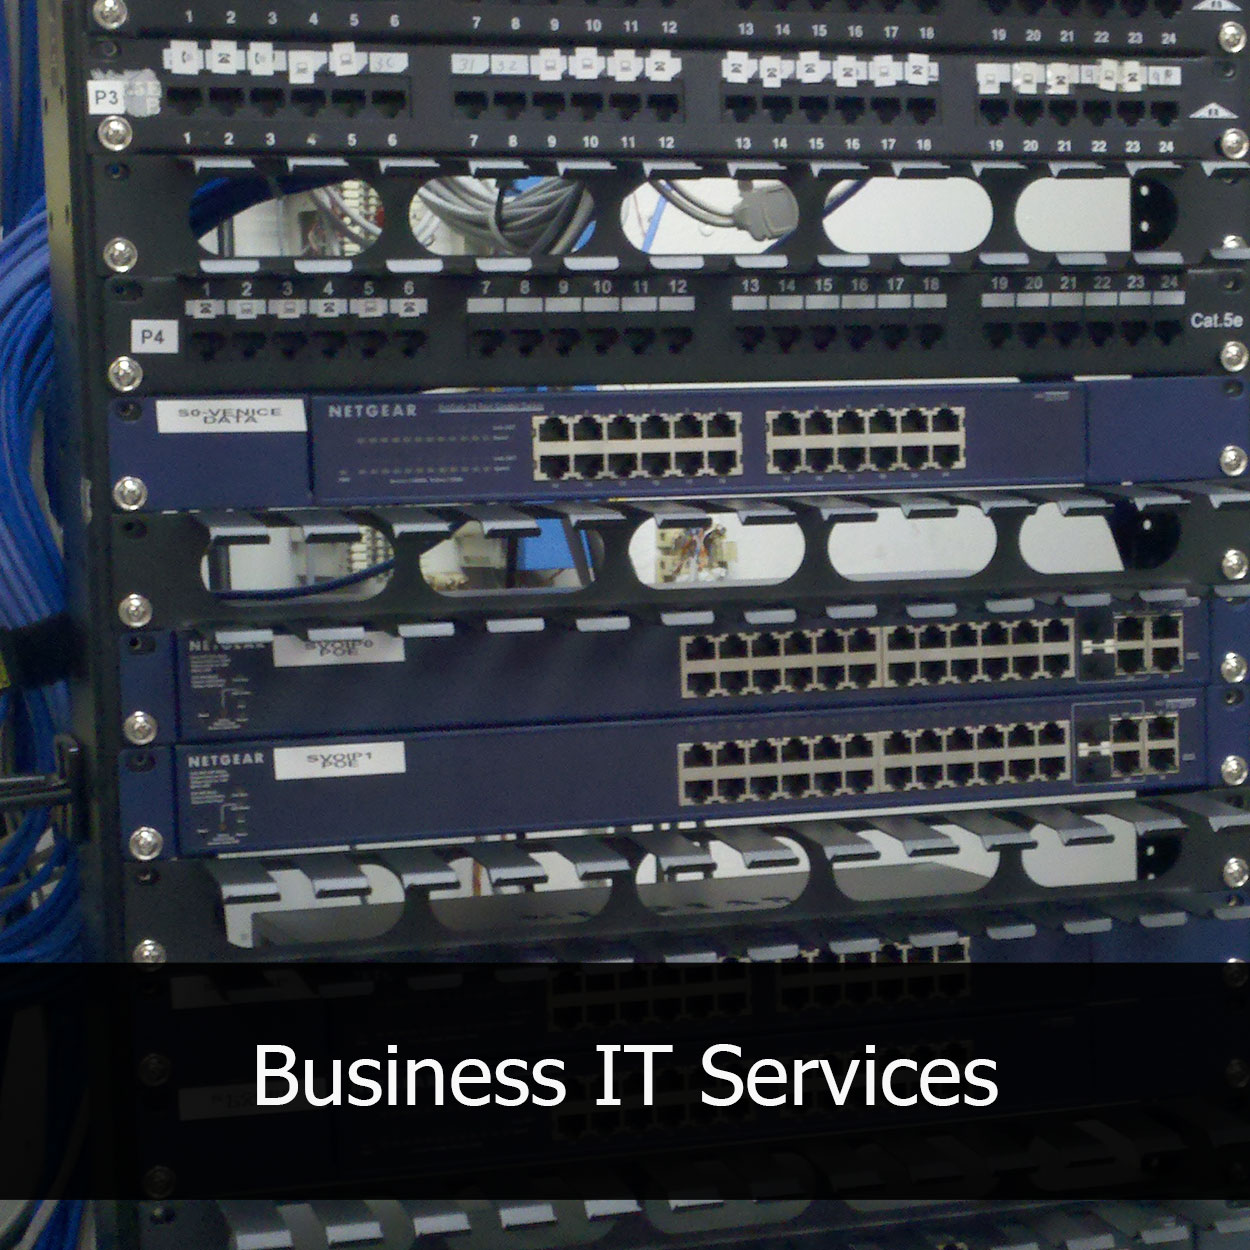 Business IT Services Network Switches Router Firewall Access Point CAT5 CAT6 Fiber Optics Server Computer Antivirus Malware Removal